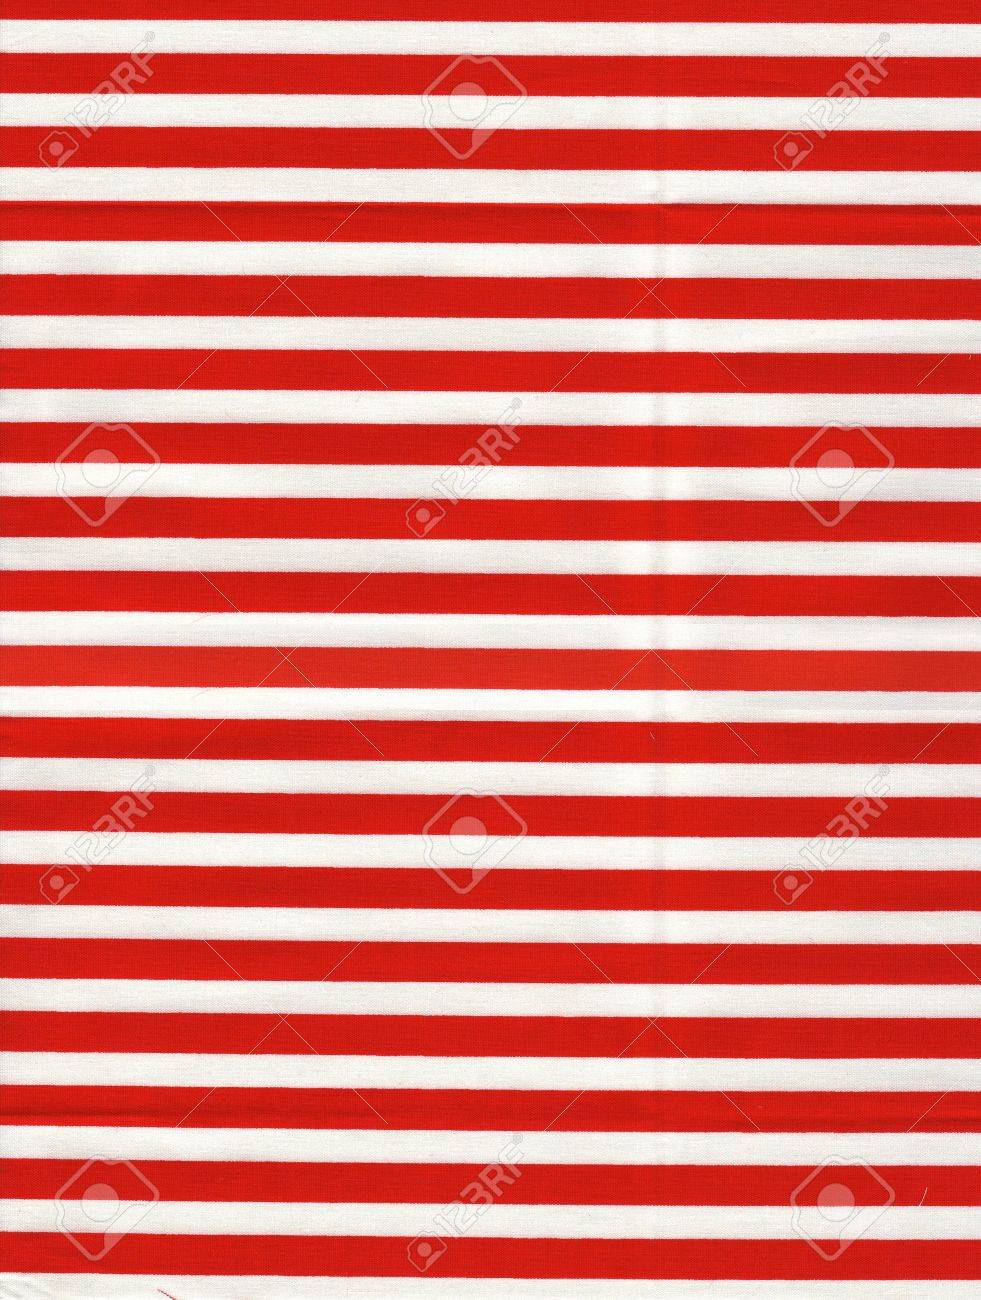 Red And White Striped Fabric Stock Photo Picture And Royalty Free